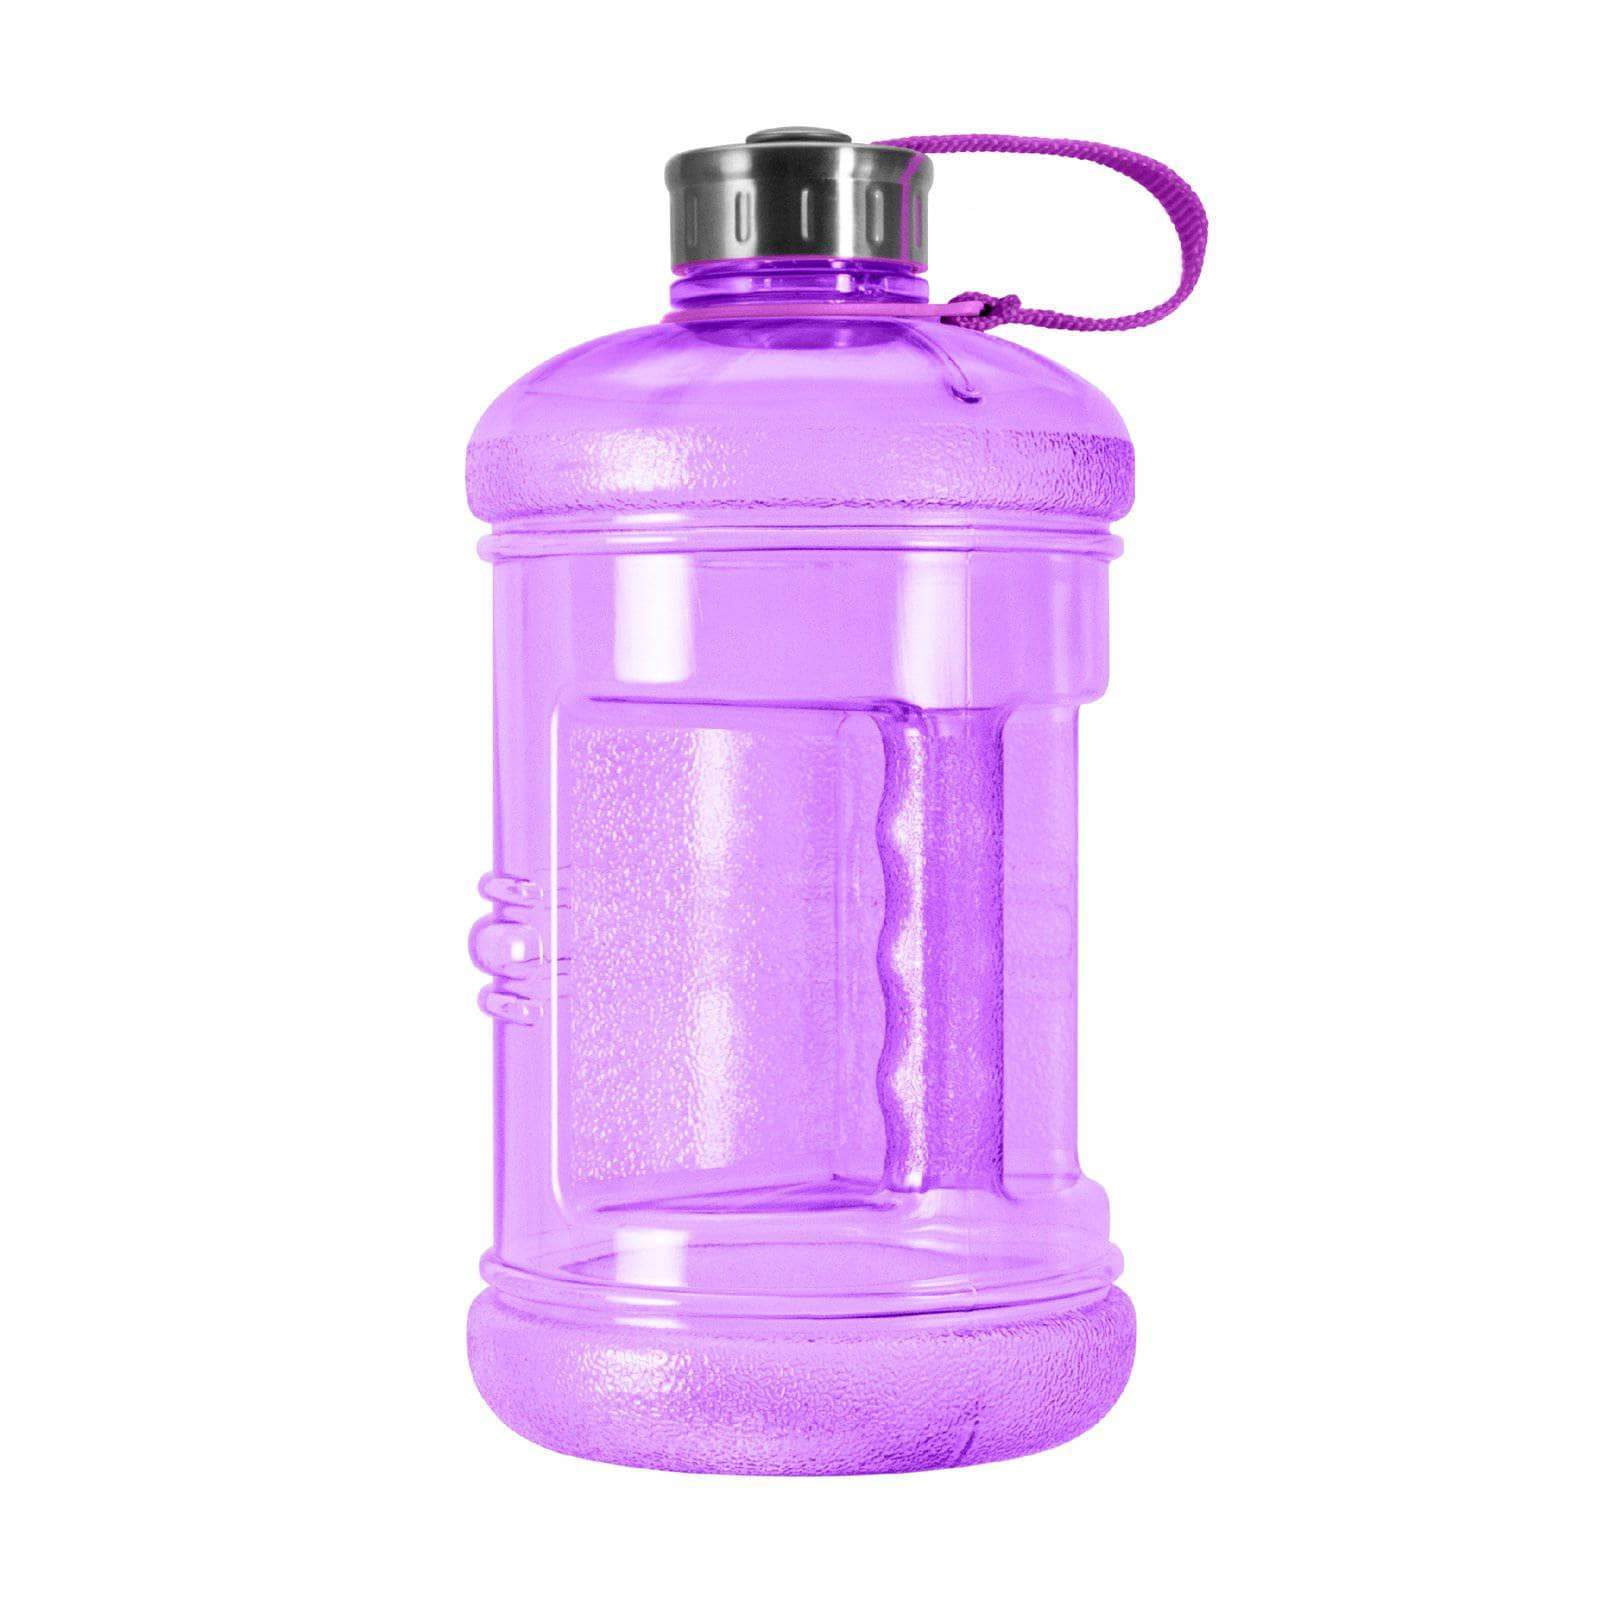 Geo Bottles Bottles Purple 2.3 Litter BPA FREE Bottle w/ Stainless Steel Cap